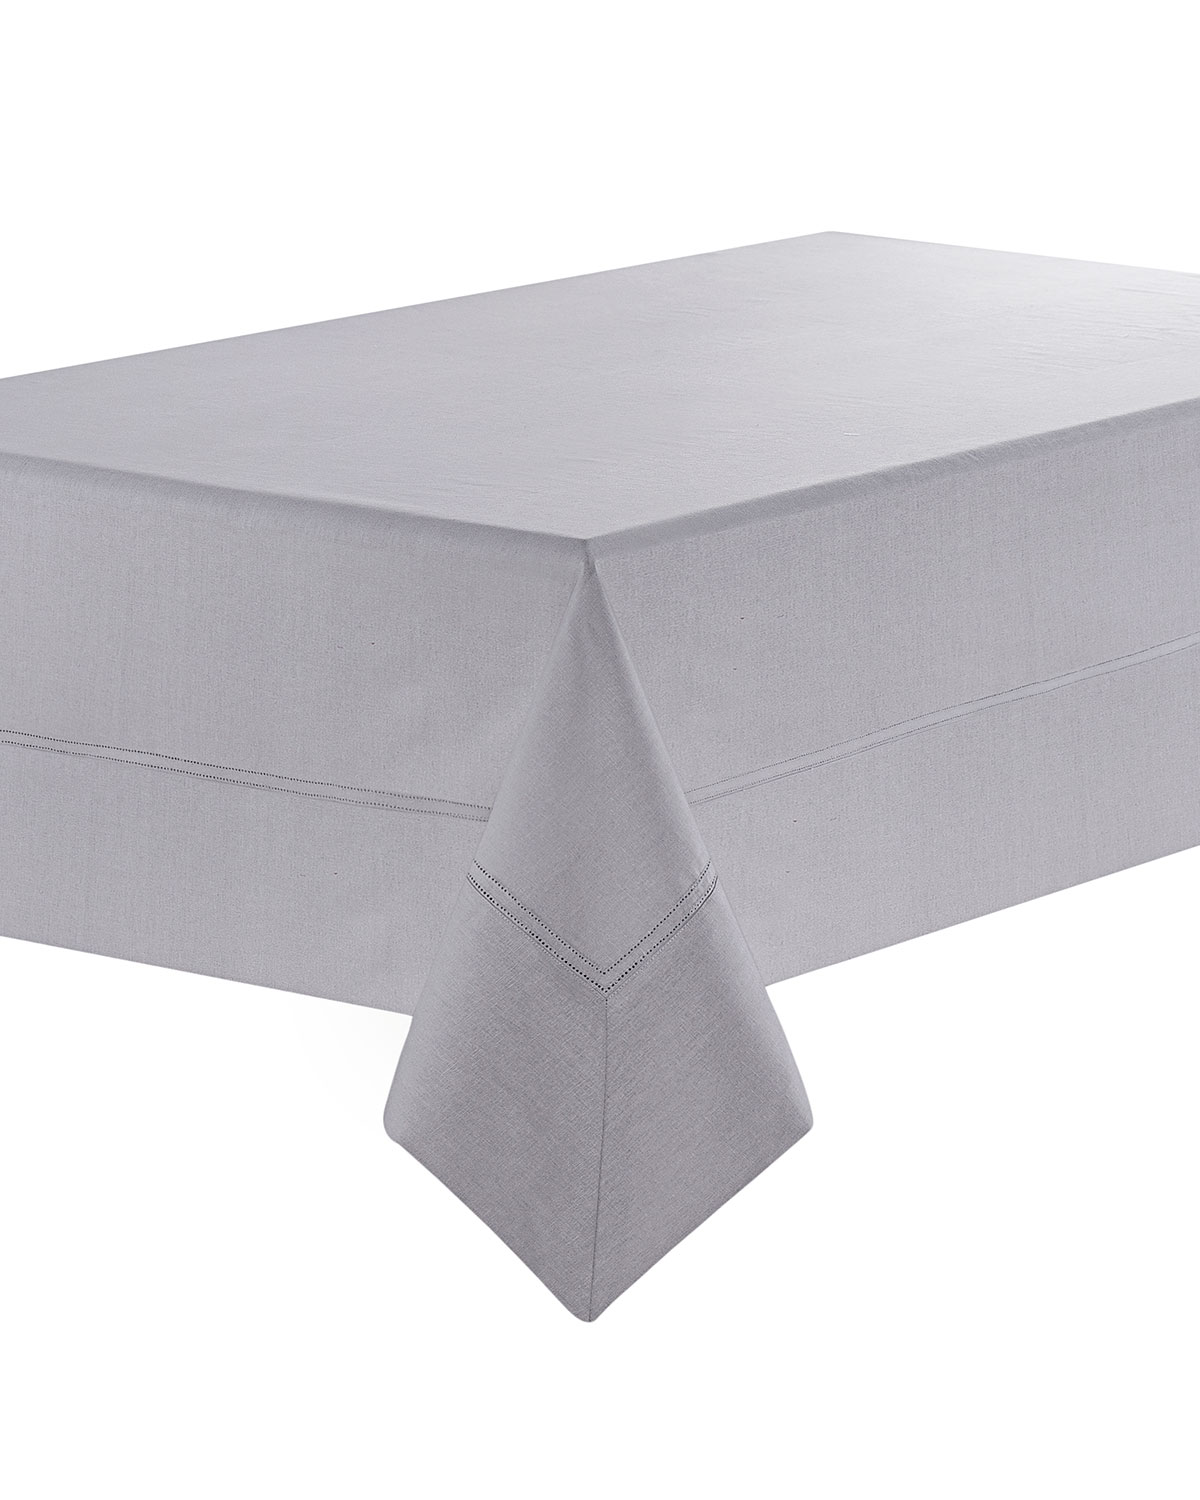 Waterfordcorra Tablecloth 70 Quot X 144 Quot